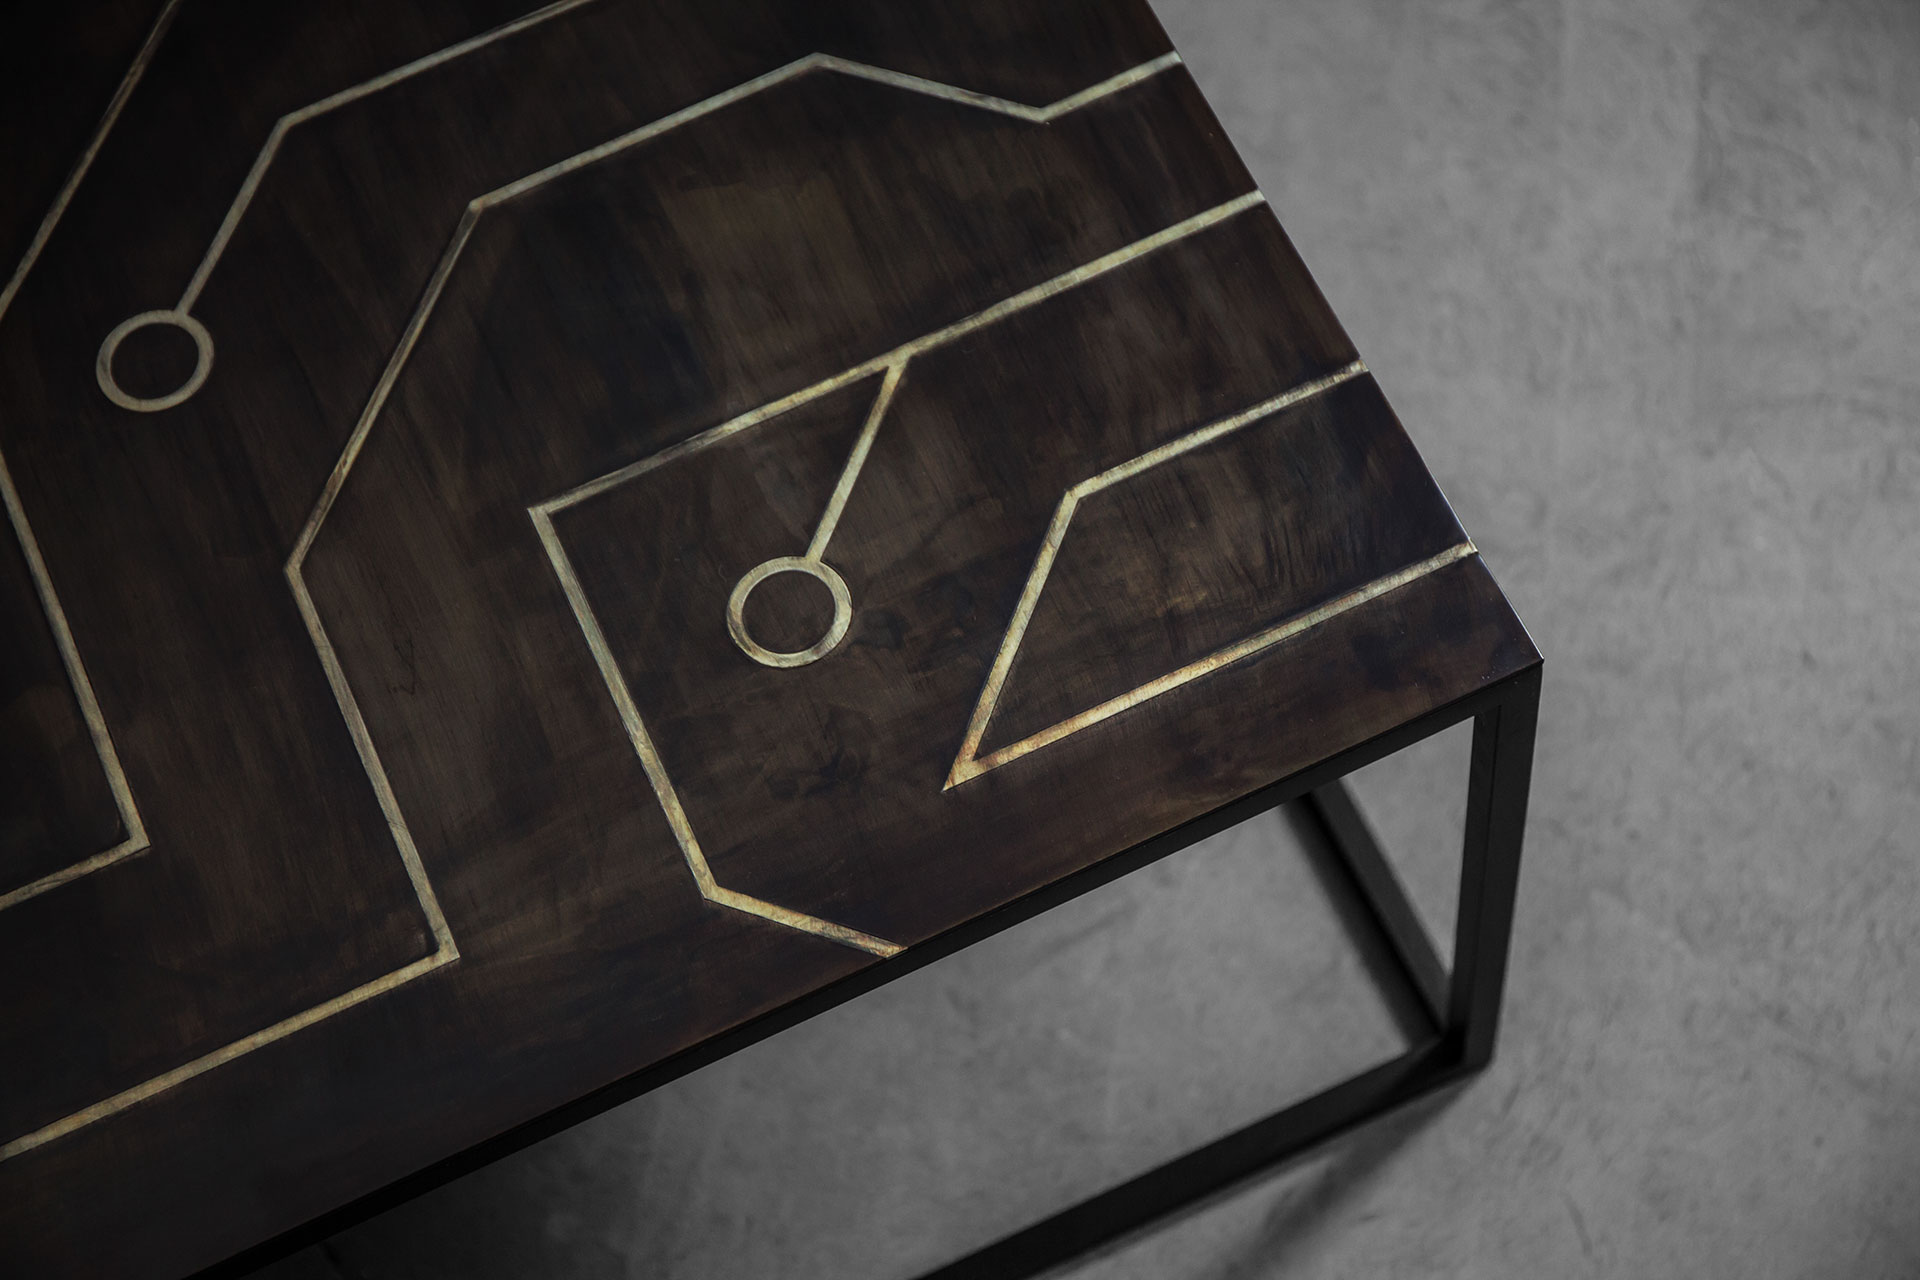 Table top stainless steel intarsia